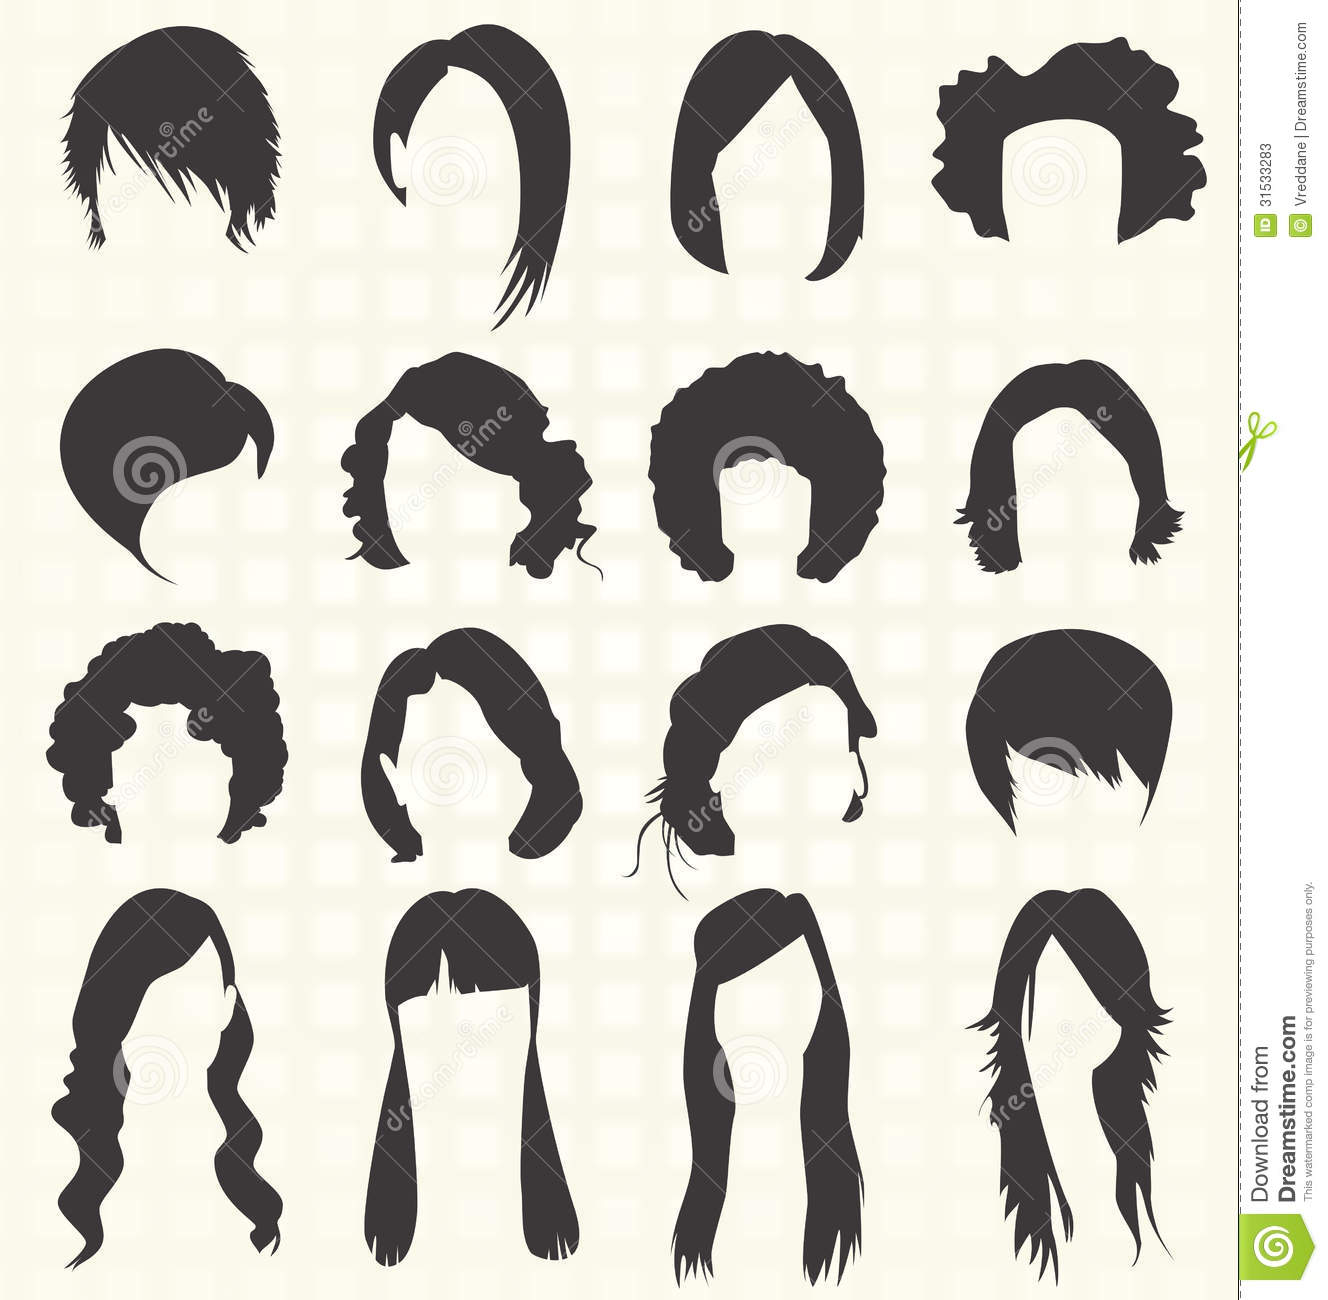 vector set: women hairstyle silhouettes stock photos - image: 31533283